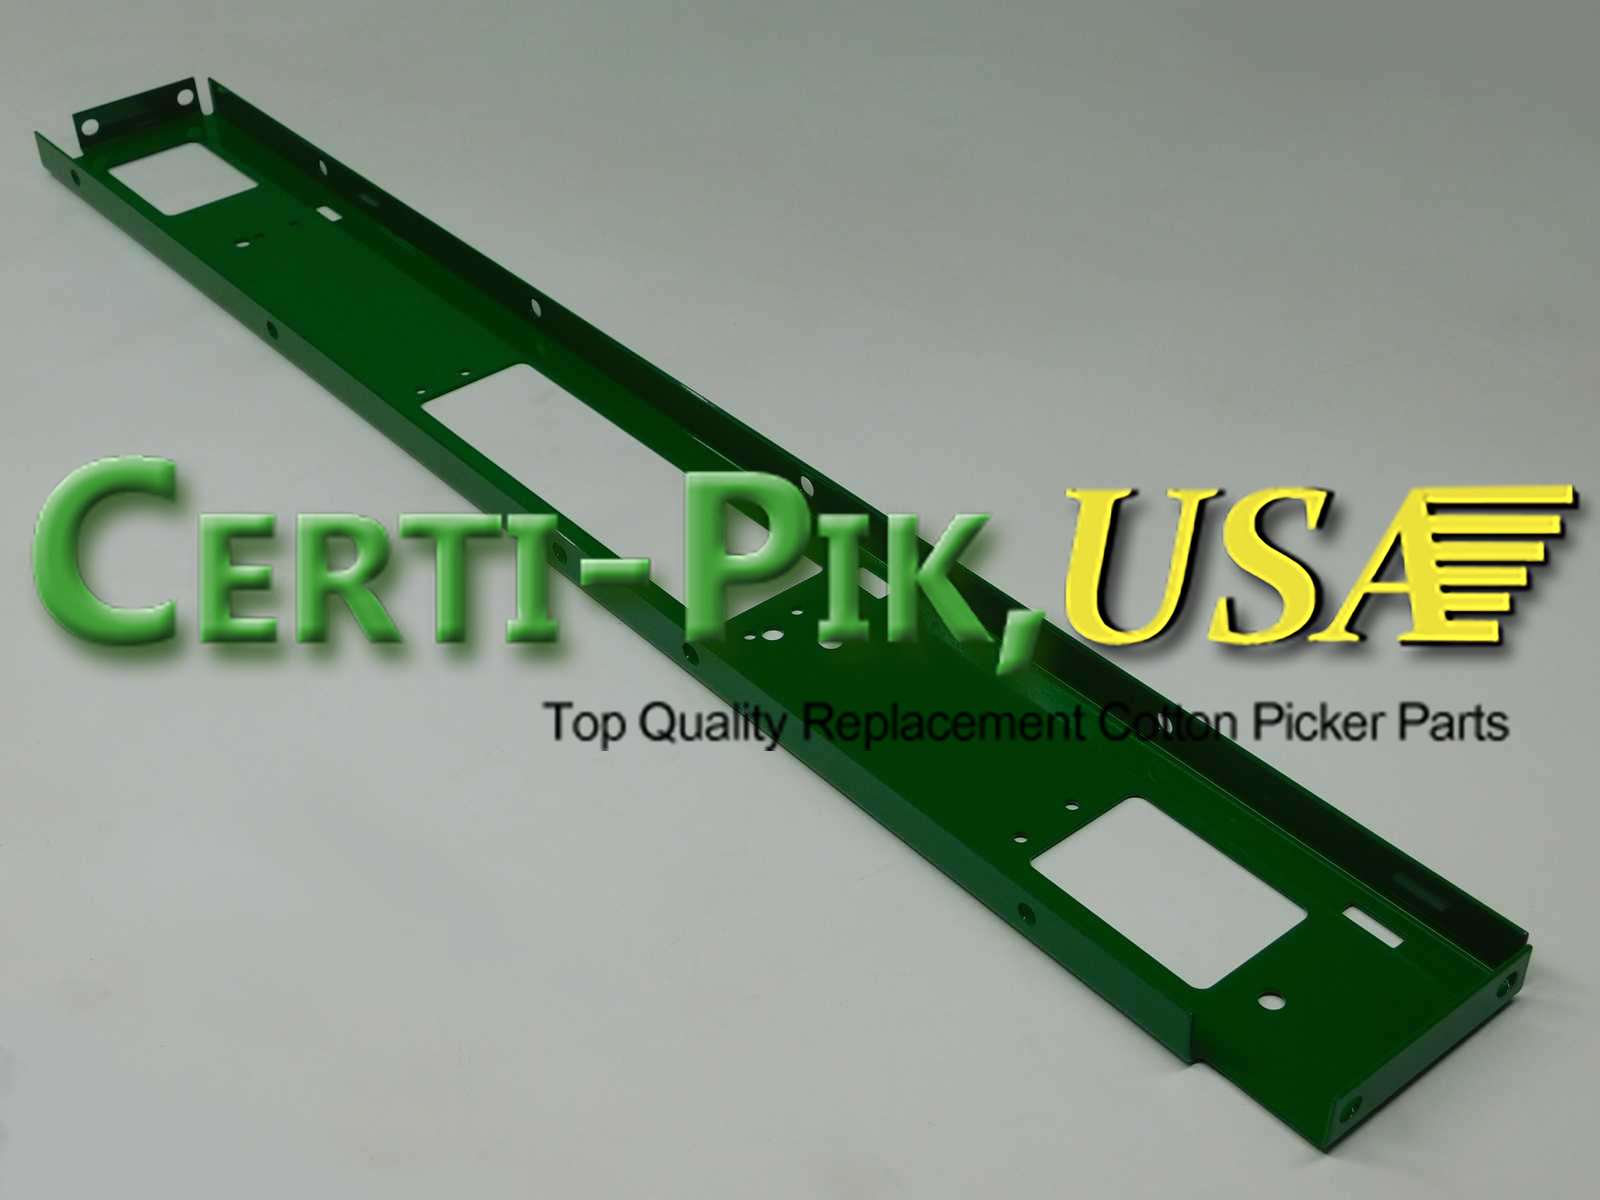 Picking Unit Cabinet: John Deere 9976-CP690 Upper Cabinet KK14109 (14109) for Sale